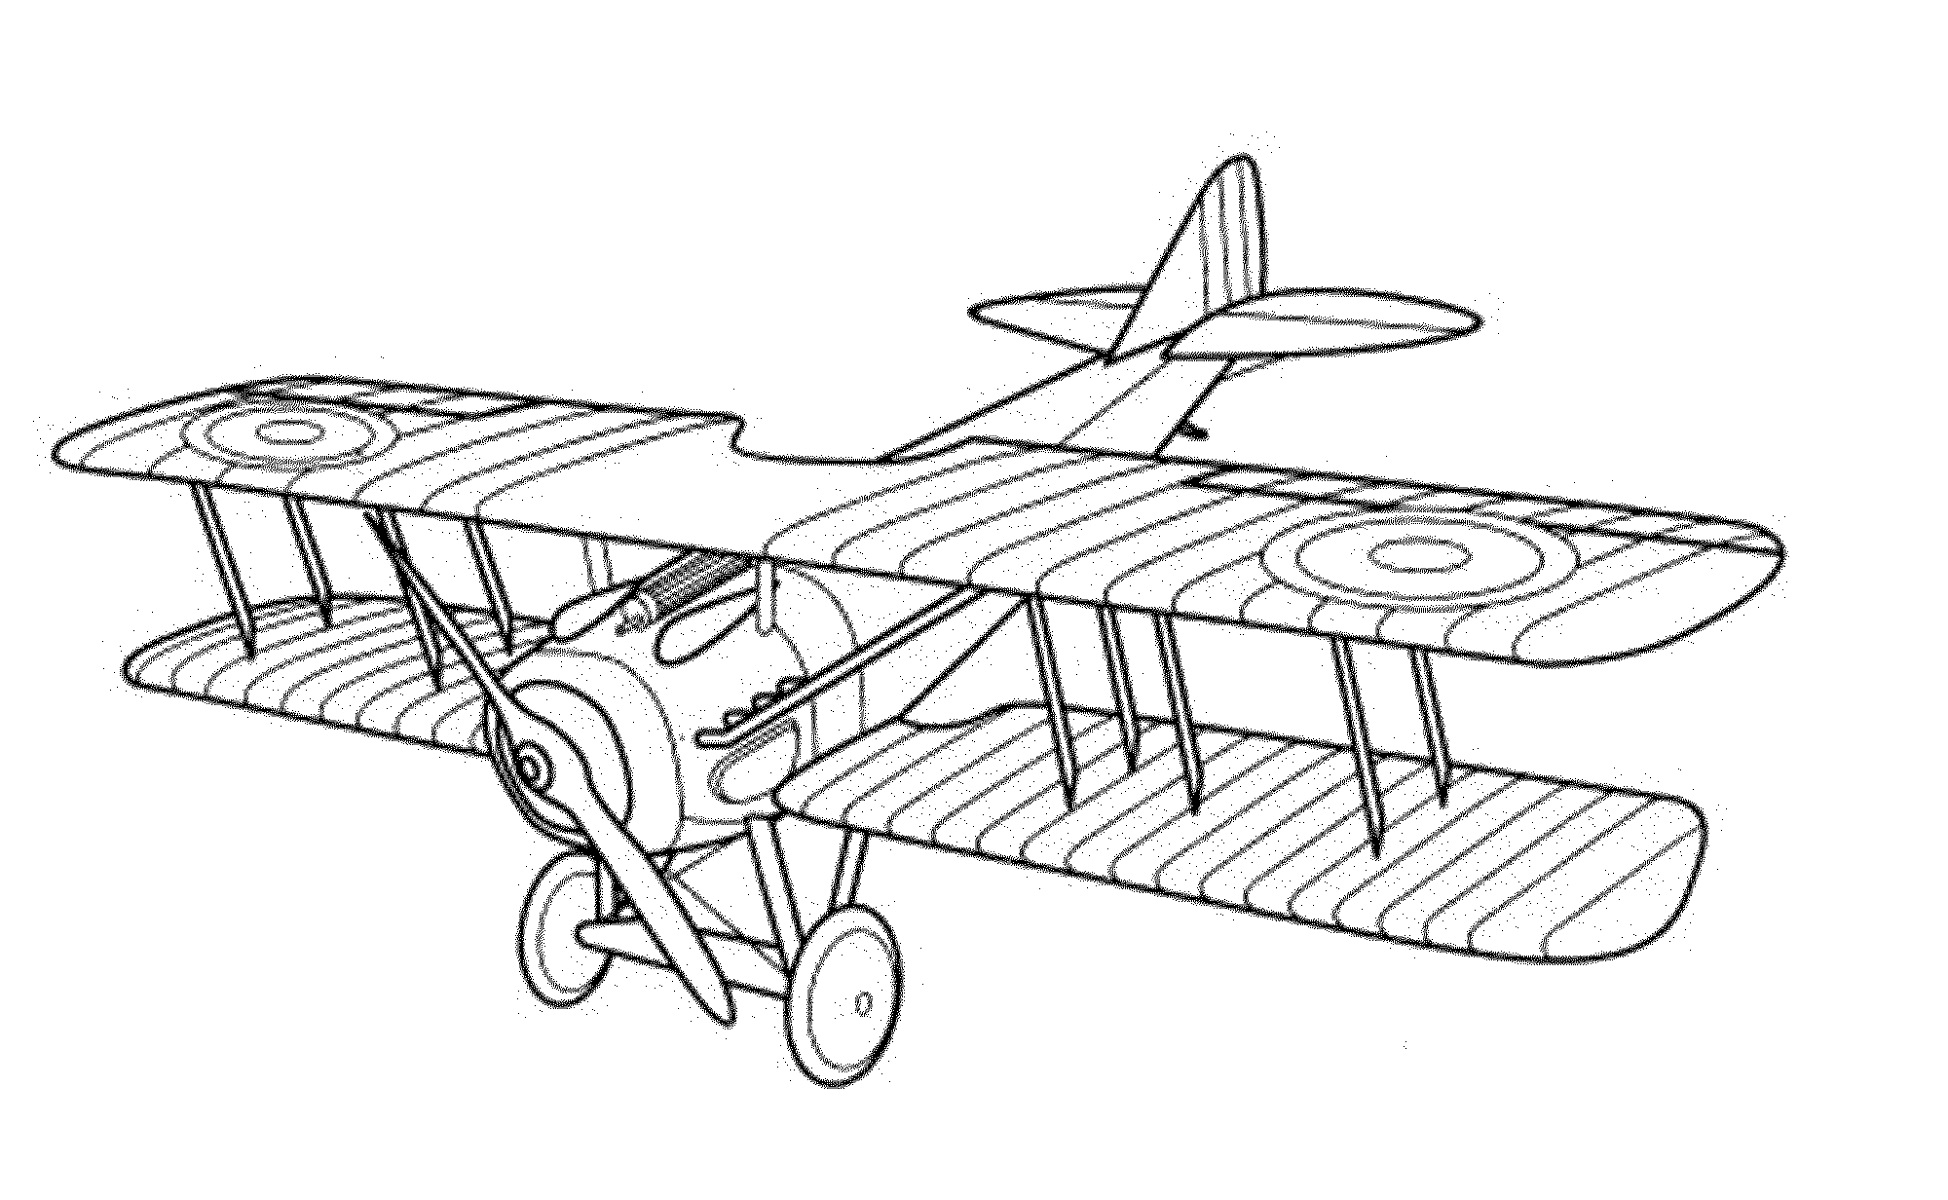 Vintage Planes Colouring Pages